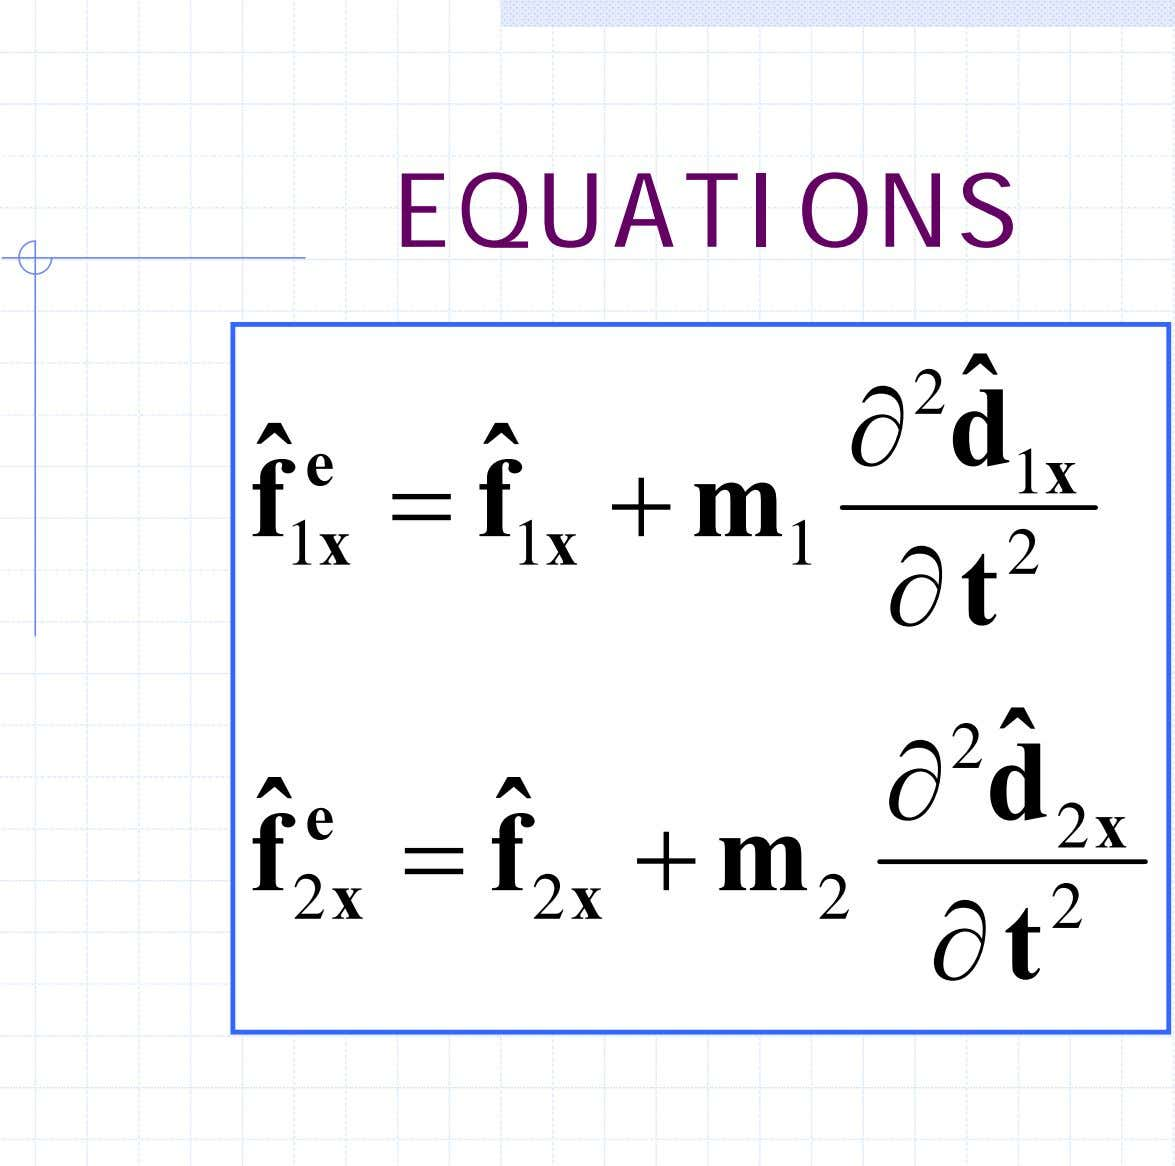 NODAL EQUATIONS 2 ˆ ∂ d ˆ e ˆ 1 x f = f +